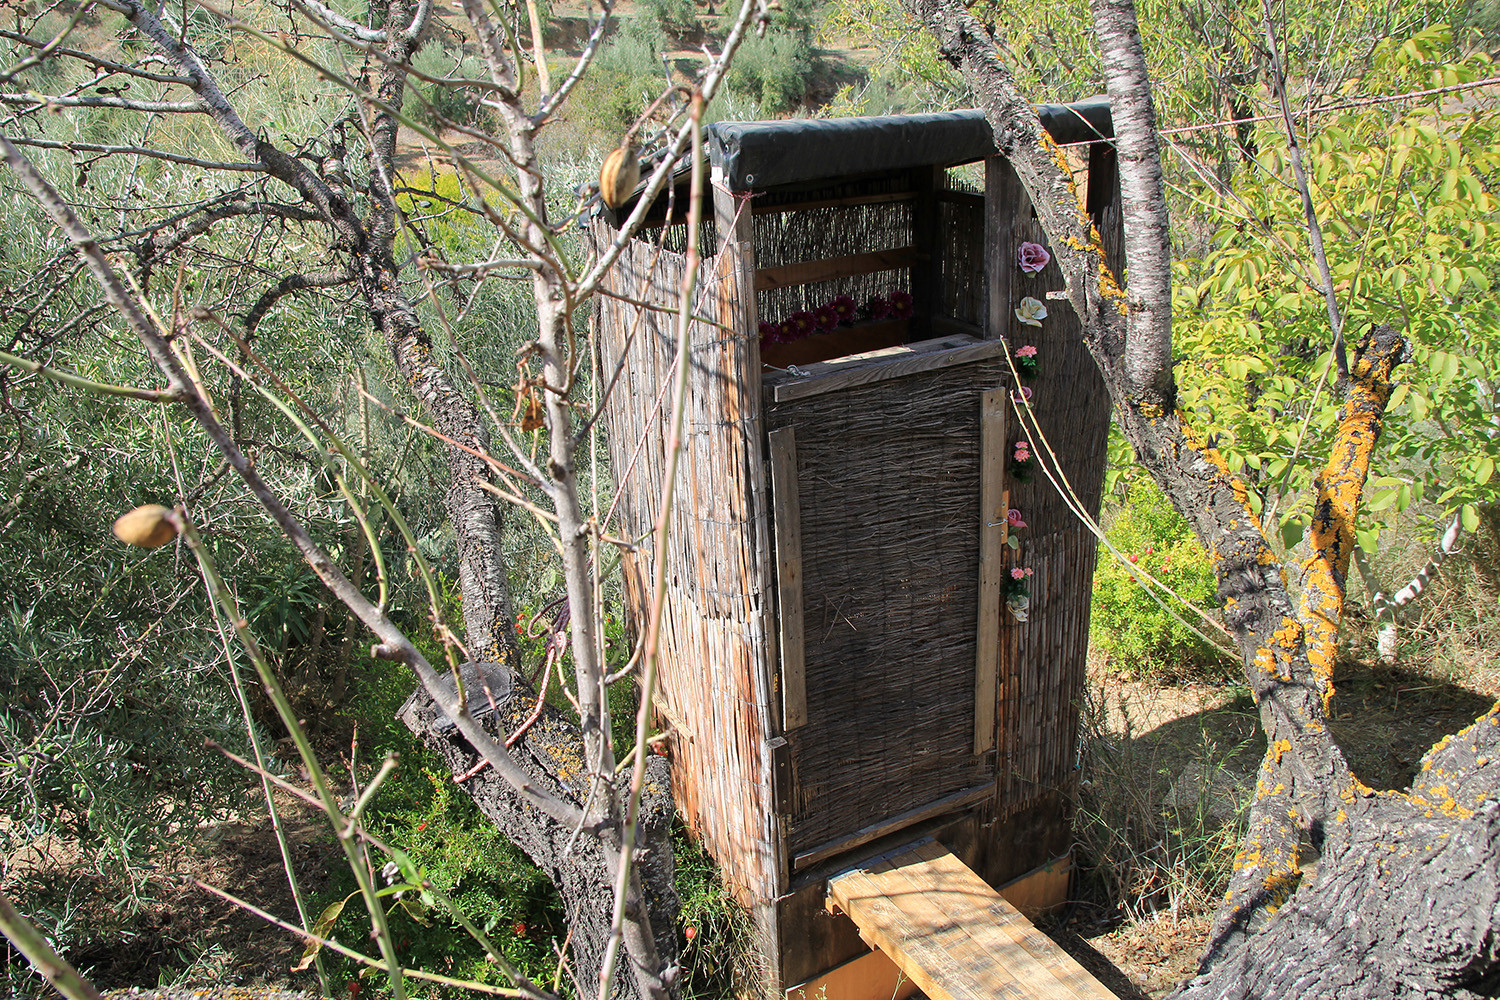 The compost poo (toilet)